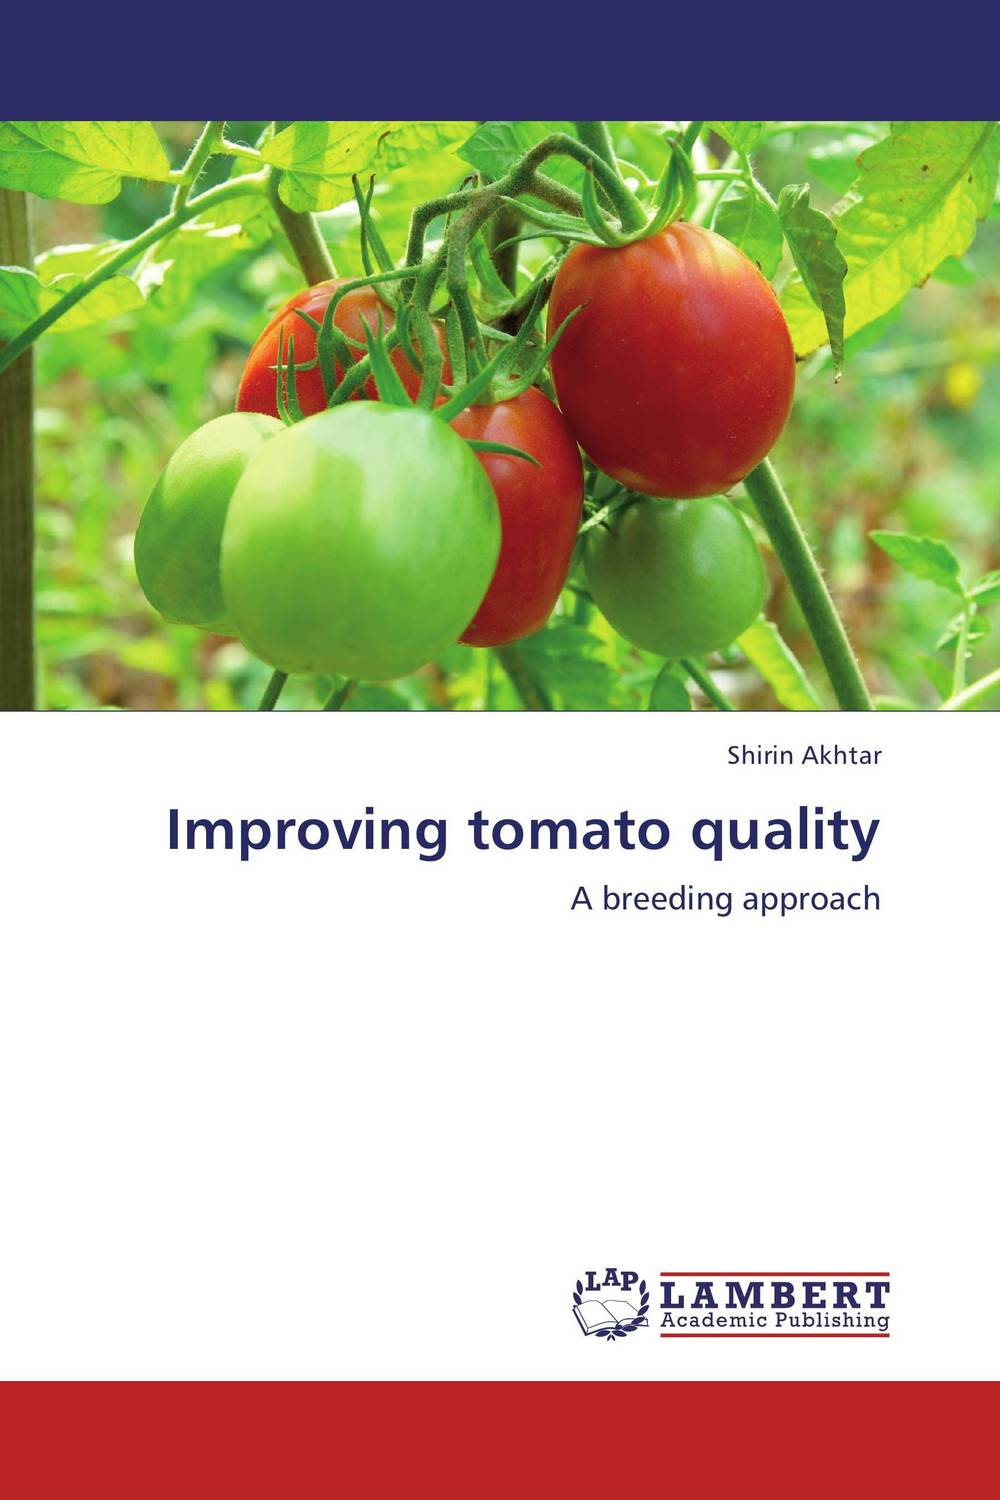 Improving tomato quality fruit quality traits in apple